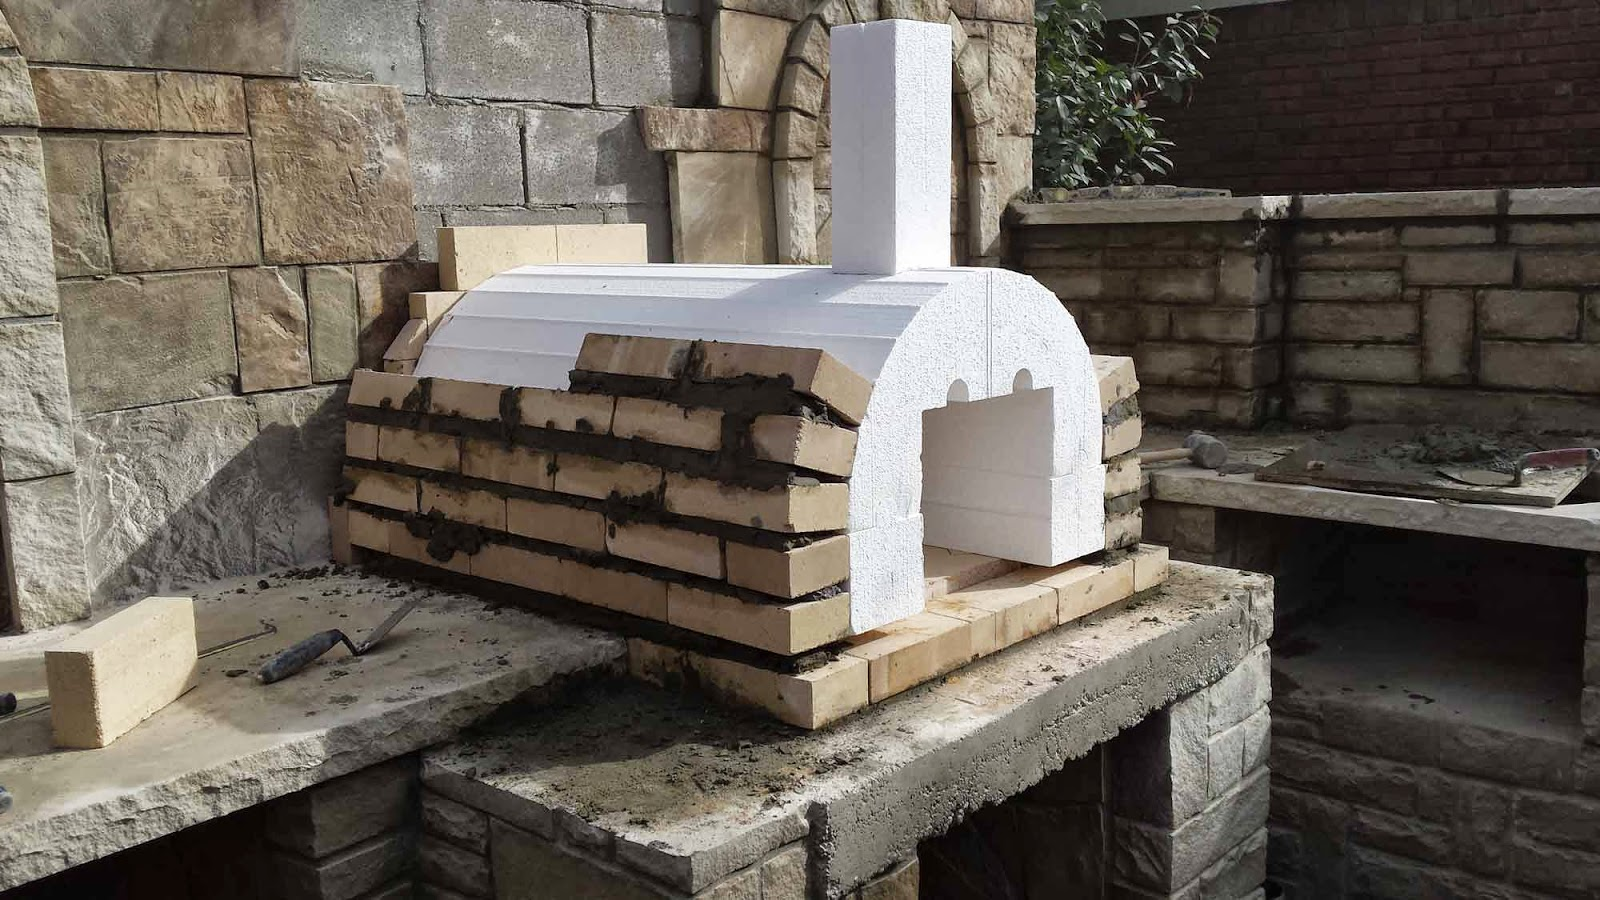 Brickwood ovens checkmark landscaping wood fired brick for Forno a legna per pizza fai da te